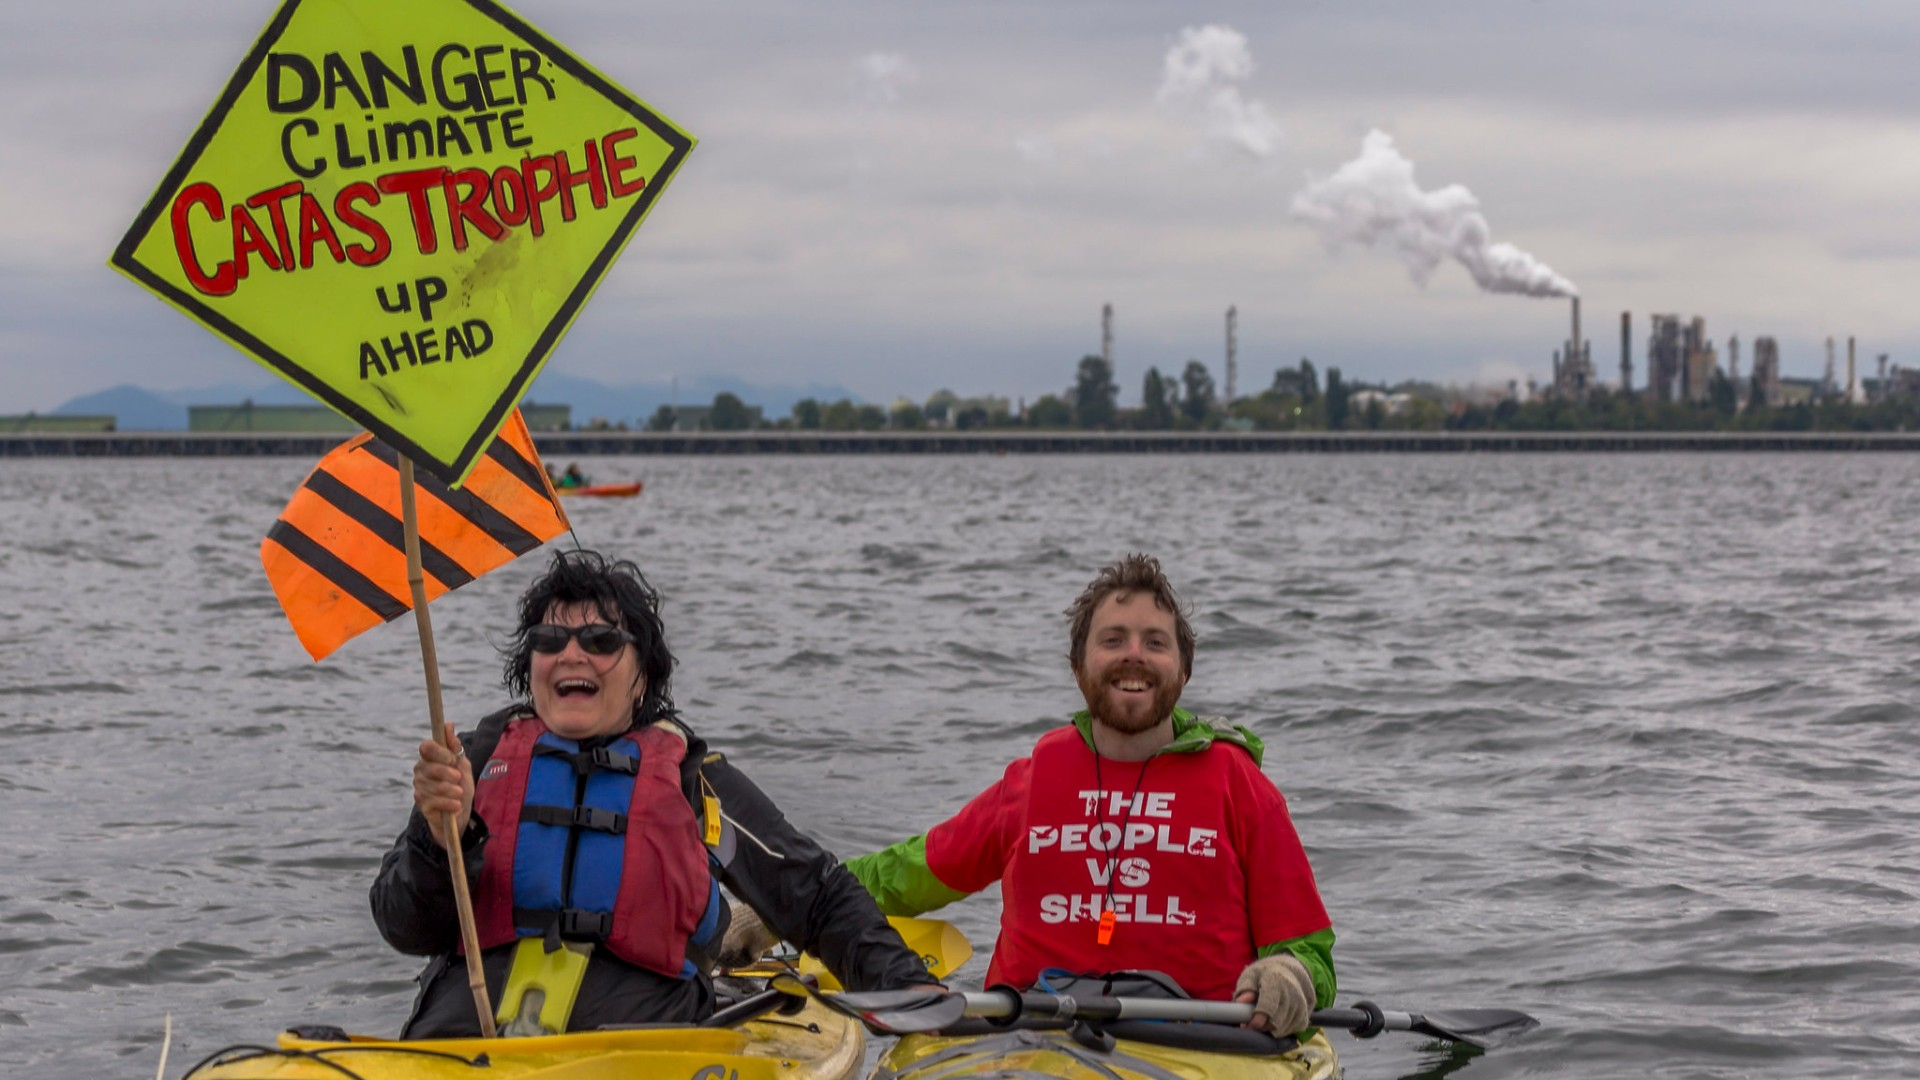 protesters in kayaks